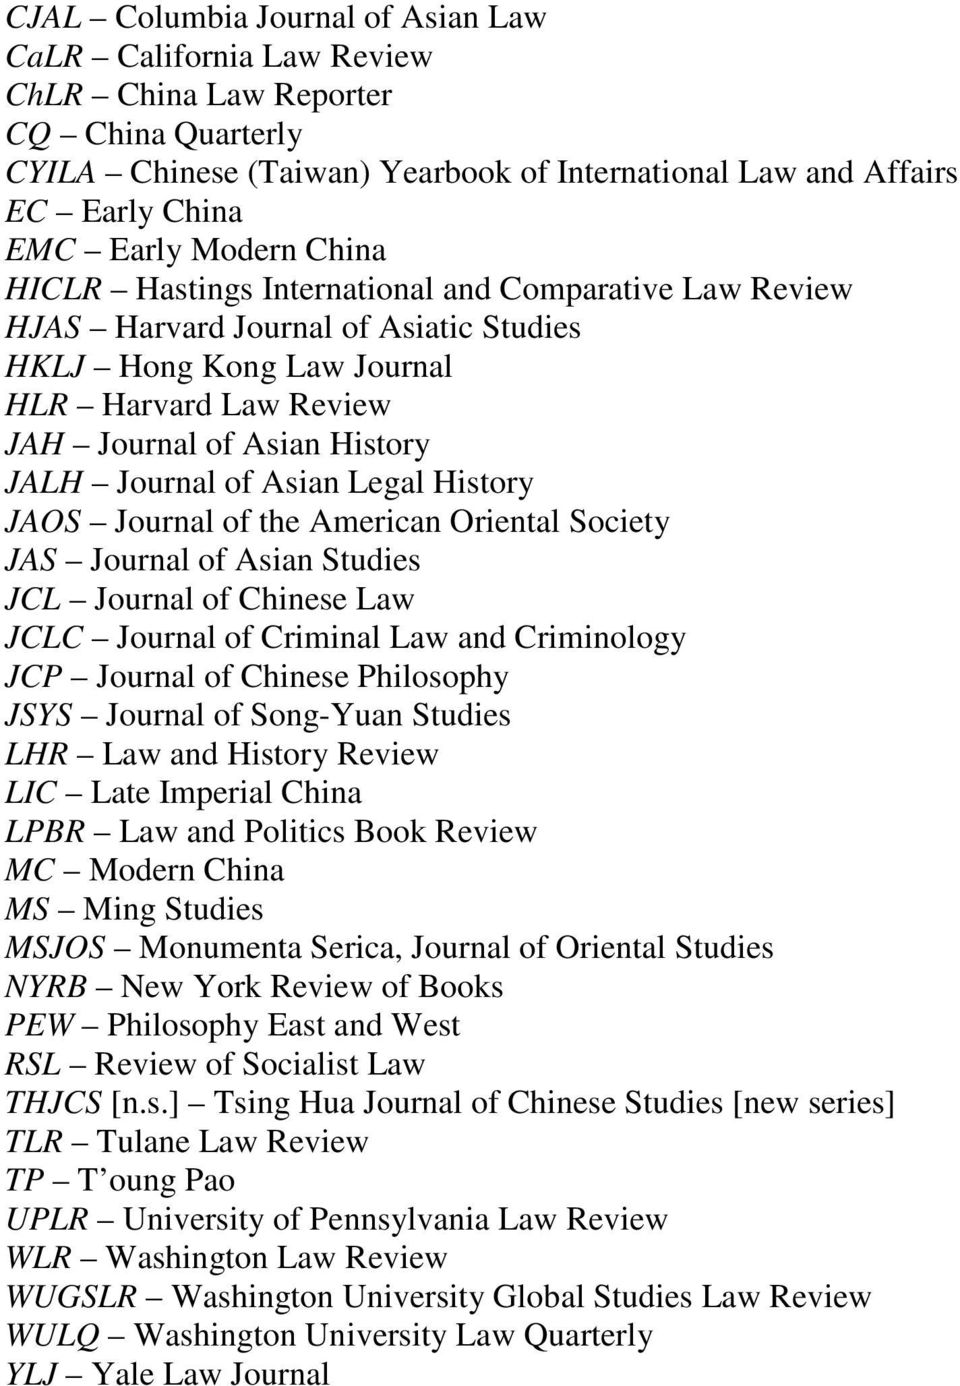 Journal of Asian Legal History JAOS Journal of the American Oriental Society JAS Journal of Asian Studies JCL Journal of Chinese Law JCLC Journal of Criminal Law and Criminology JCP Journal of